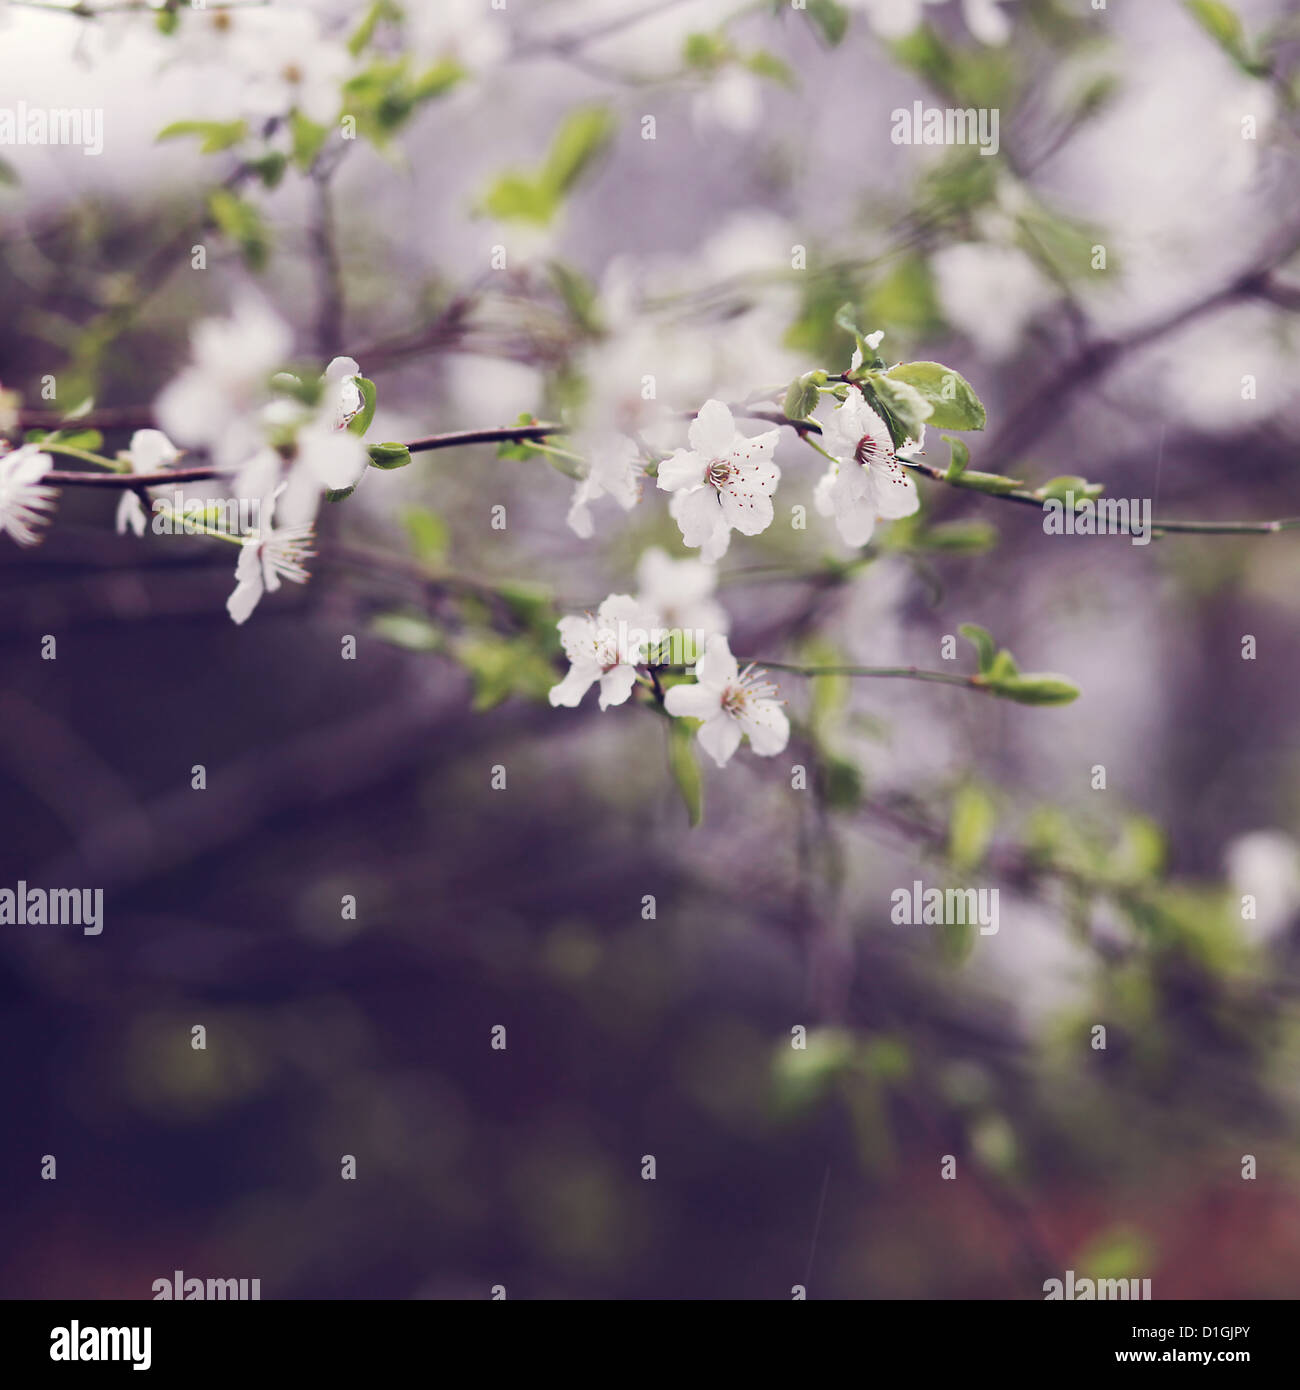 Close up of cherry blossoms in bloom - Stock Image